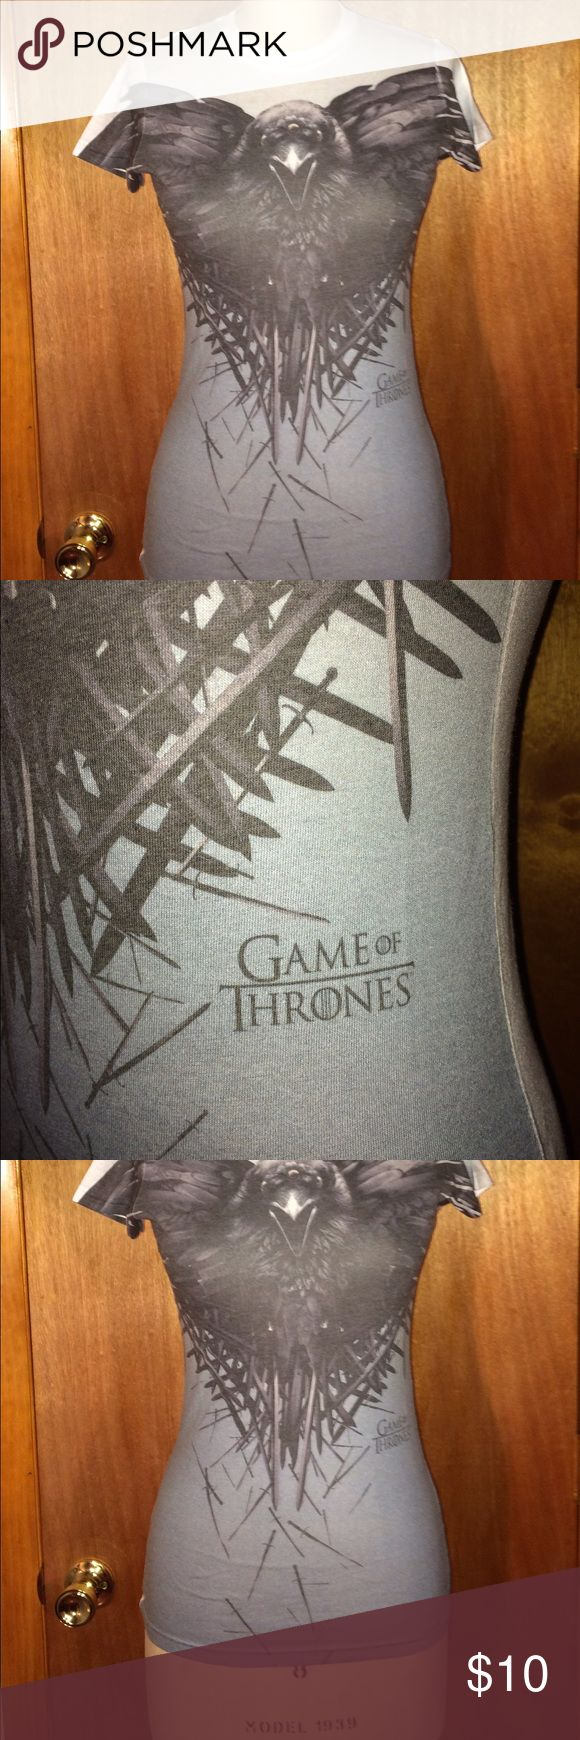 """NWOT Game of Thrones T-Shirt Sz Jrs S NWOT Hame of Thrones crow super soft t-shirt Sz Jrs Small.  Chest: 17"""", waist: 14"""", total length: 25.5"""".  In new condition. Tops Tees - Short Sleeve"""